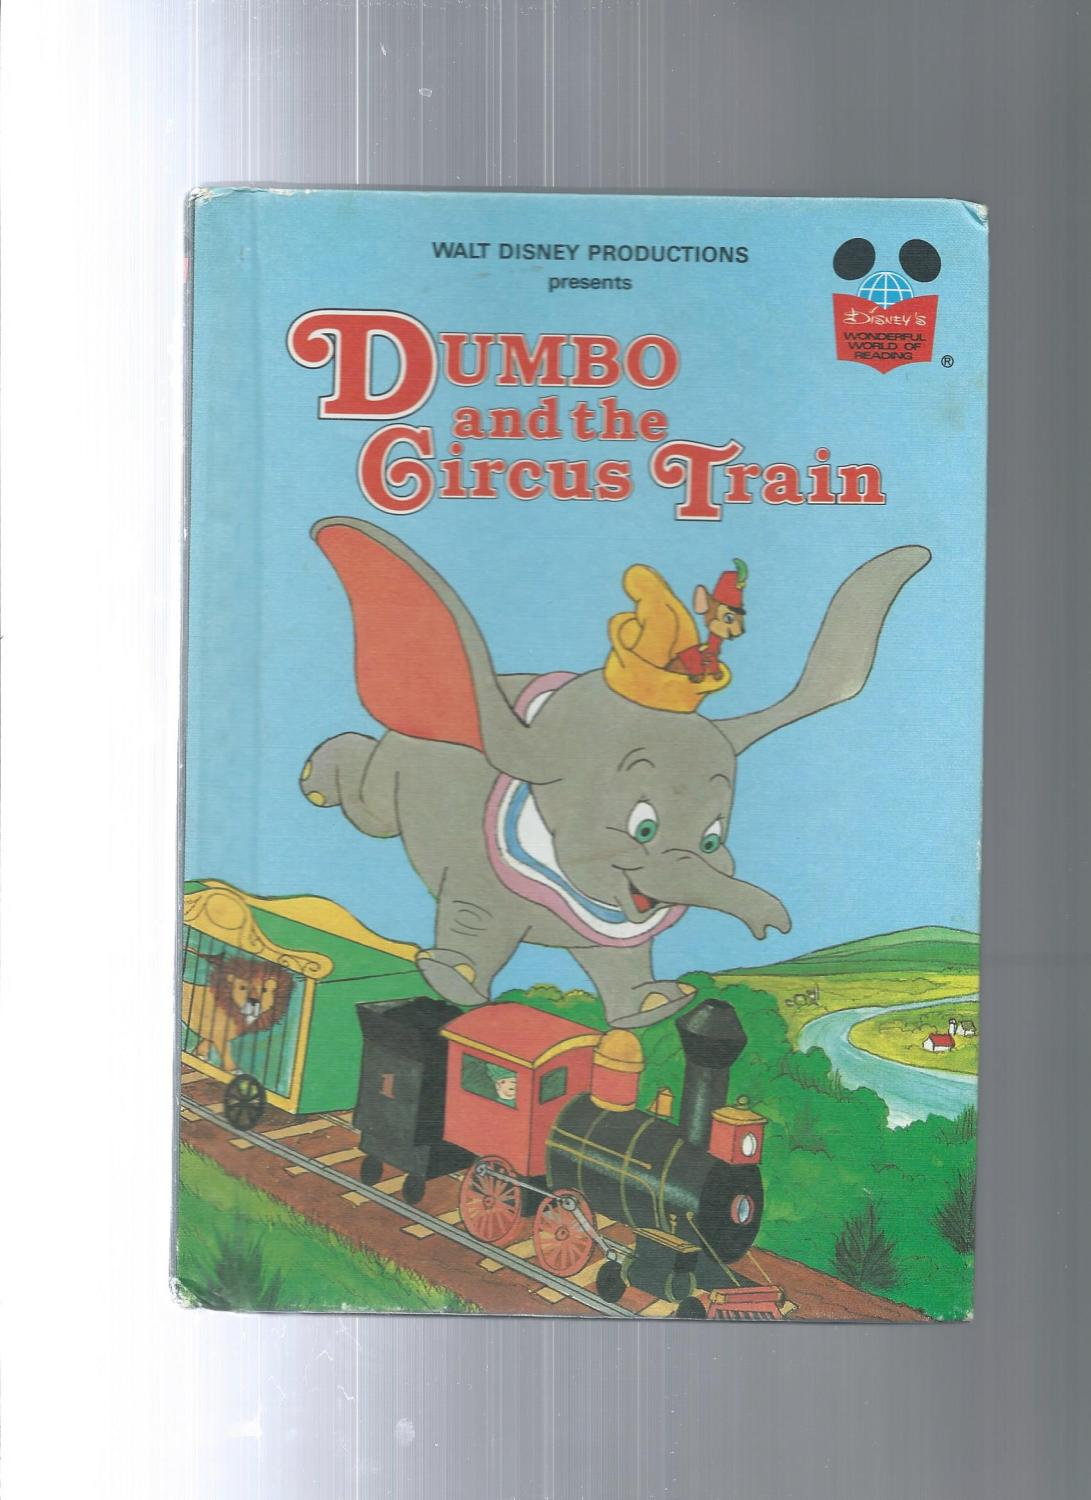 walt disney productions presents dumbo and the circus train by walt